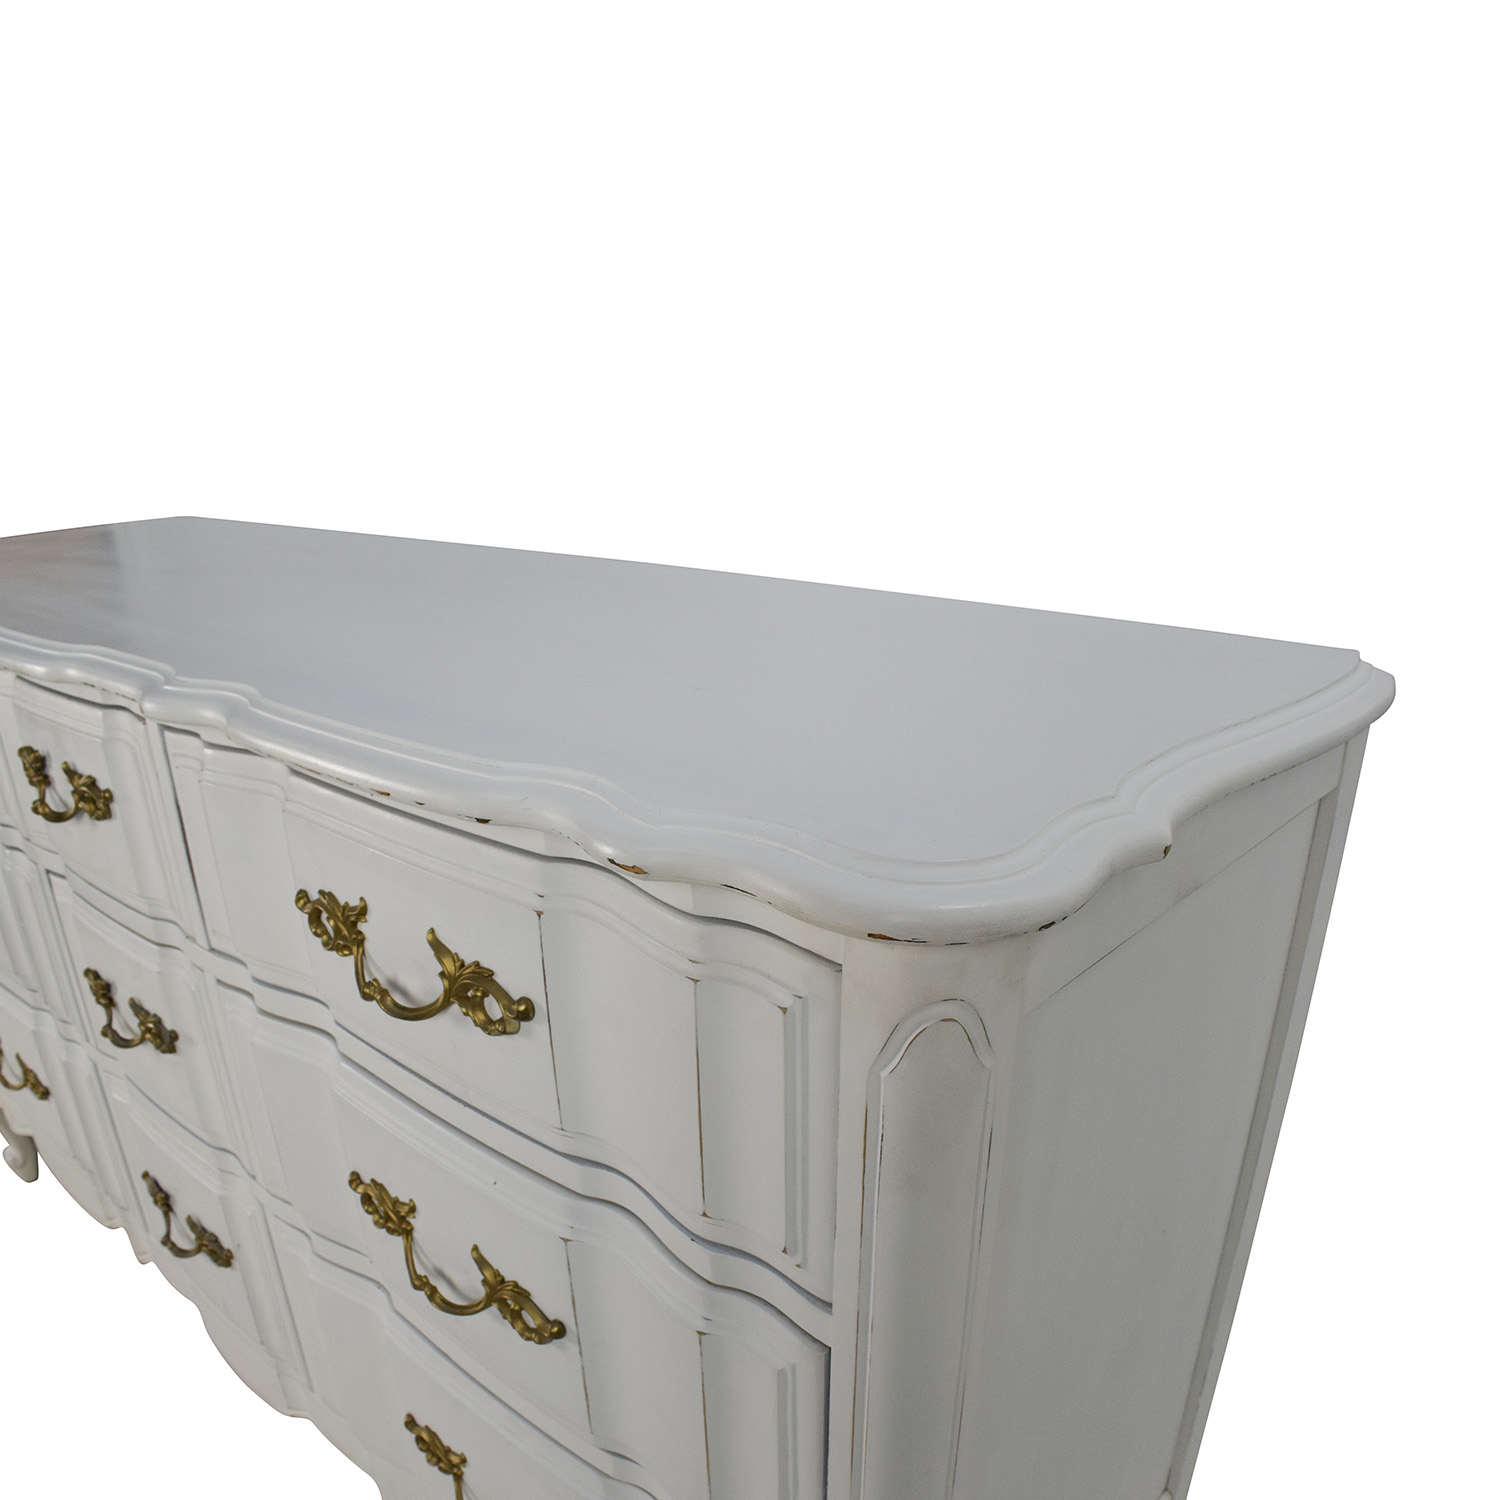 Antique Style White Dresser dimensions